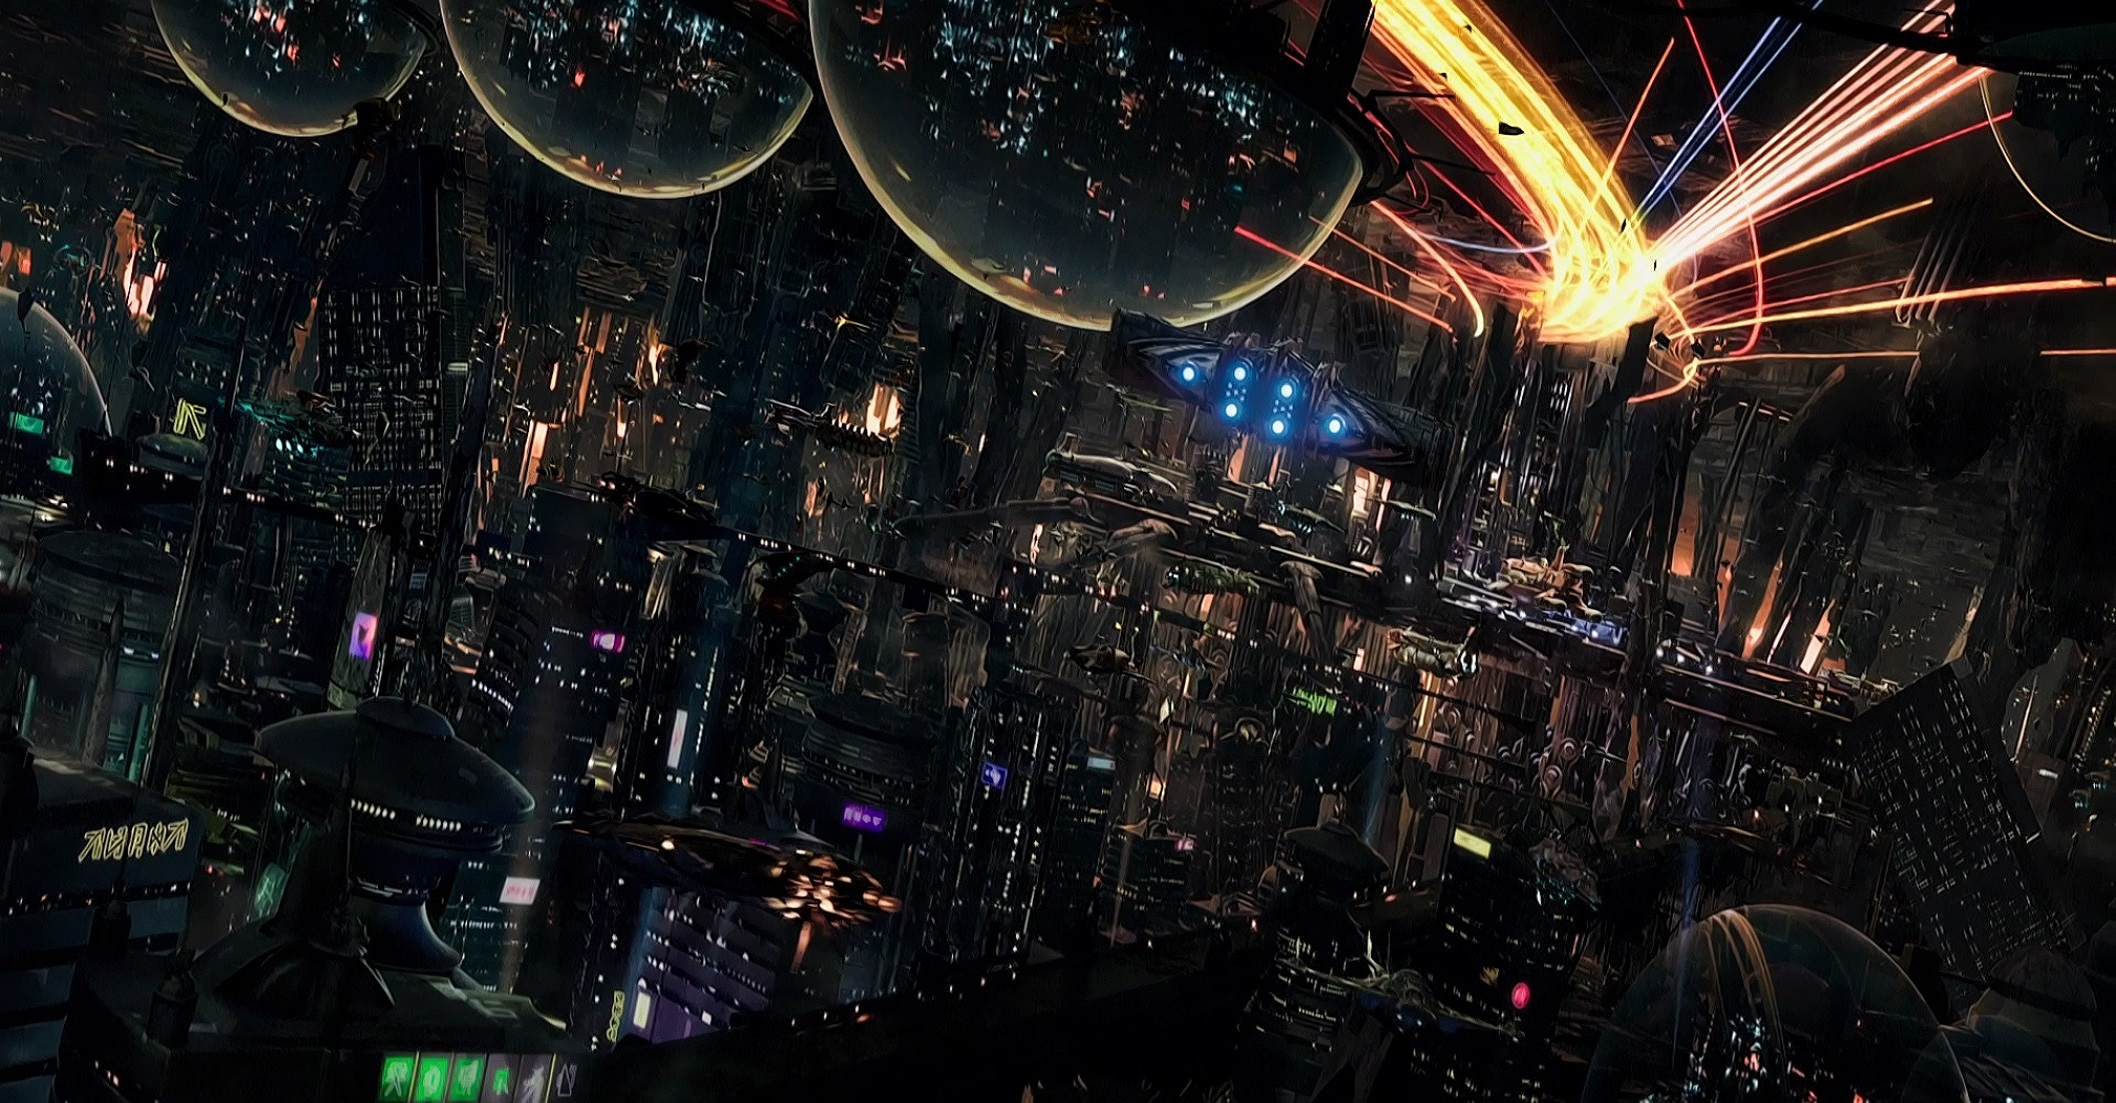 The interior of Alpha in Valerian and the City of a Thousand Planets (2017)